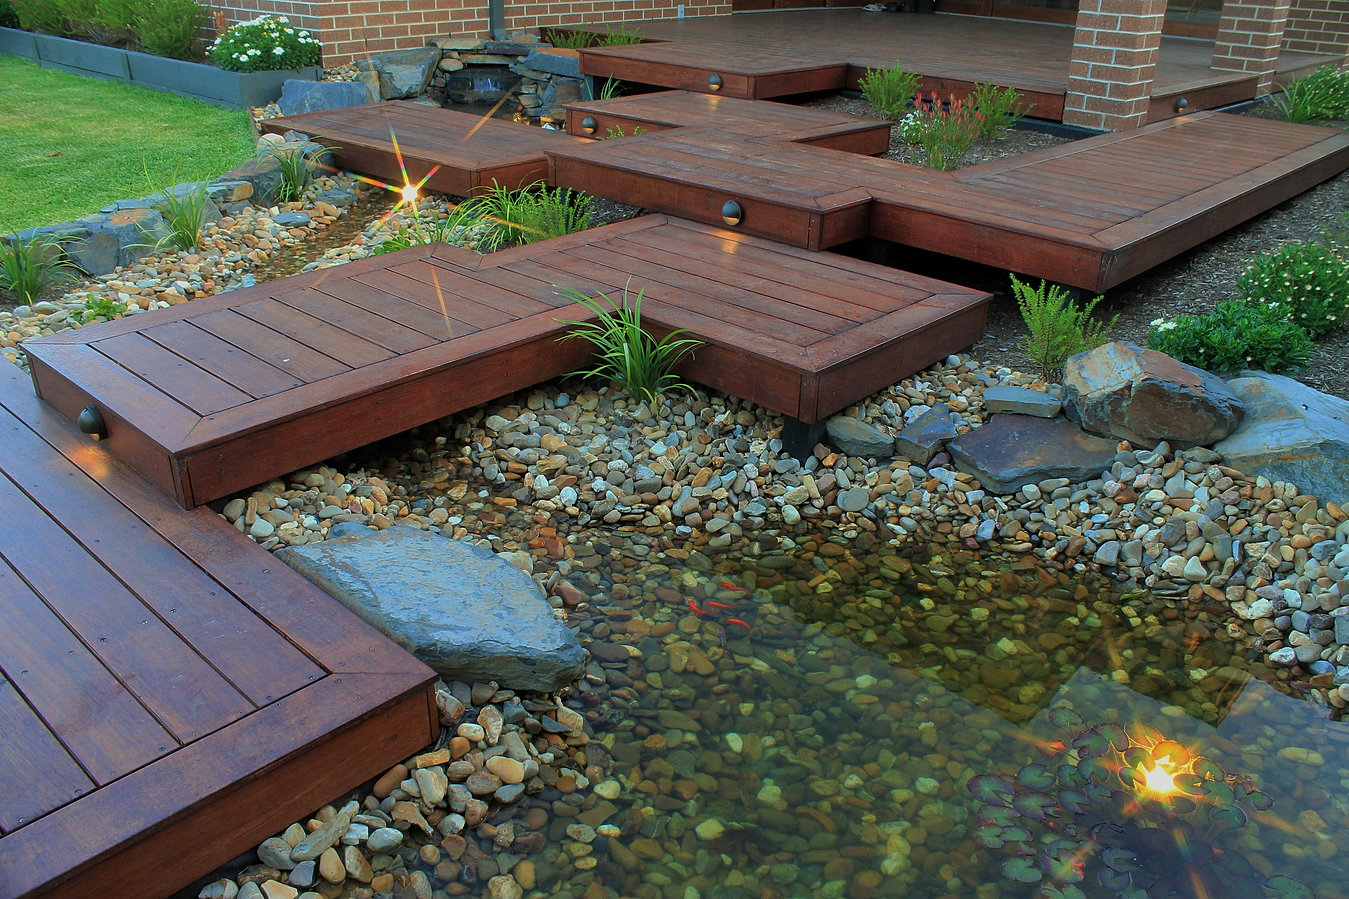 Landscaping melbourne garden design intrinsic landscapes for Fish ponds melbourne